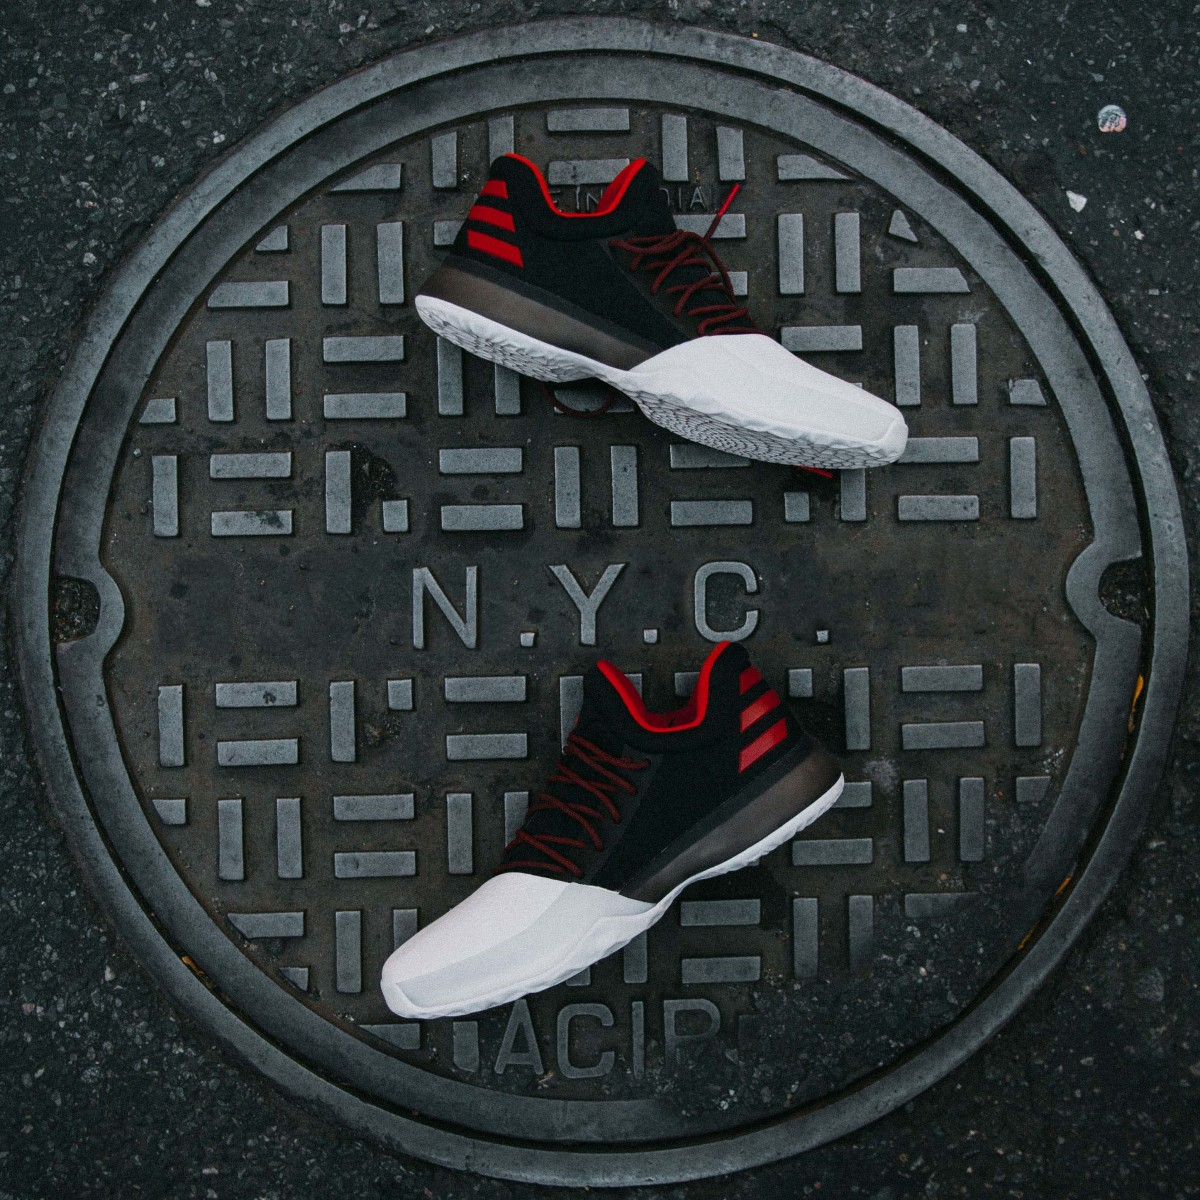 adidas-5th-ave-nyc-flagship-04.jpg